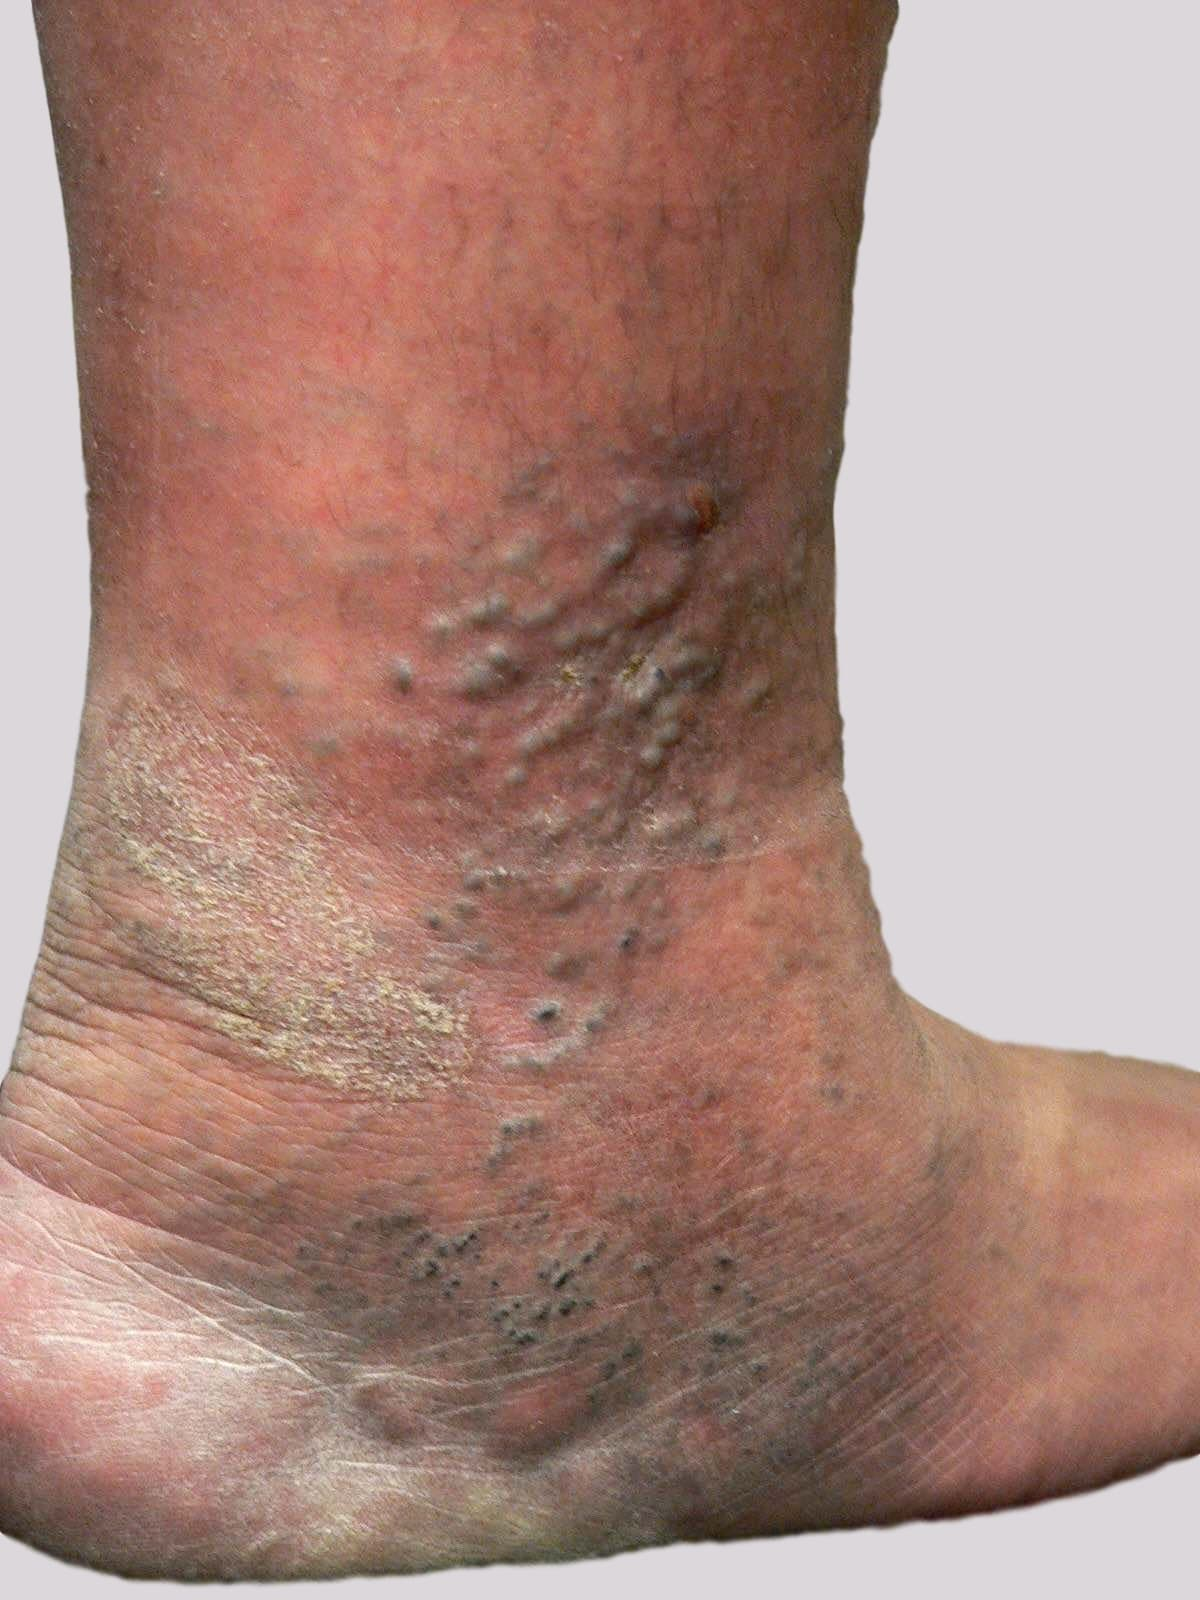 Eczema and varicose veins with very shallow